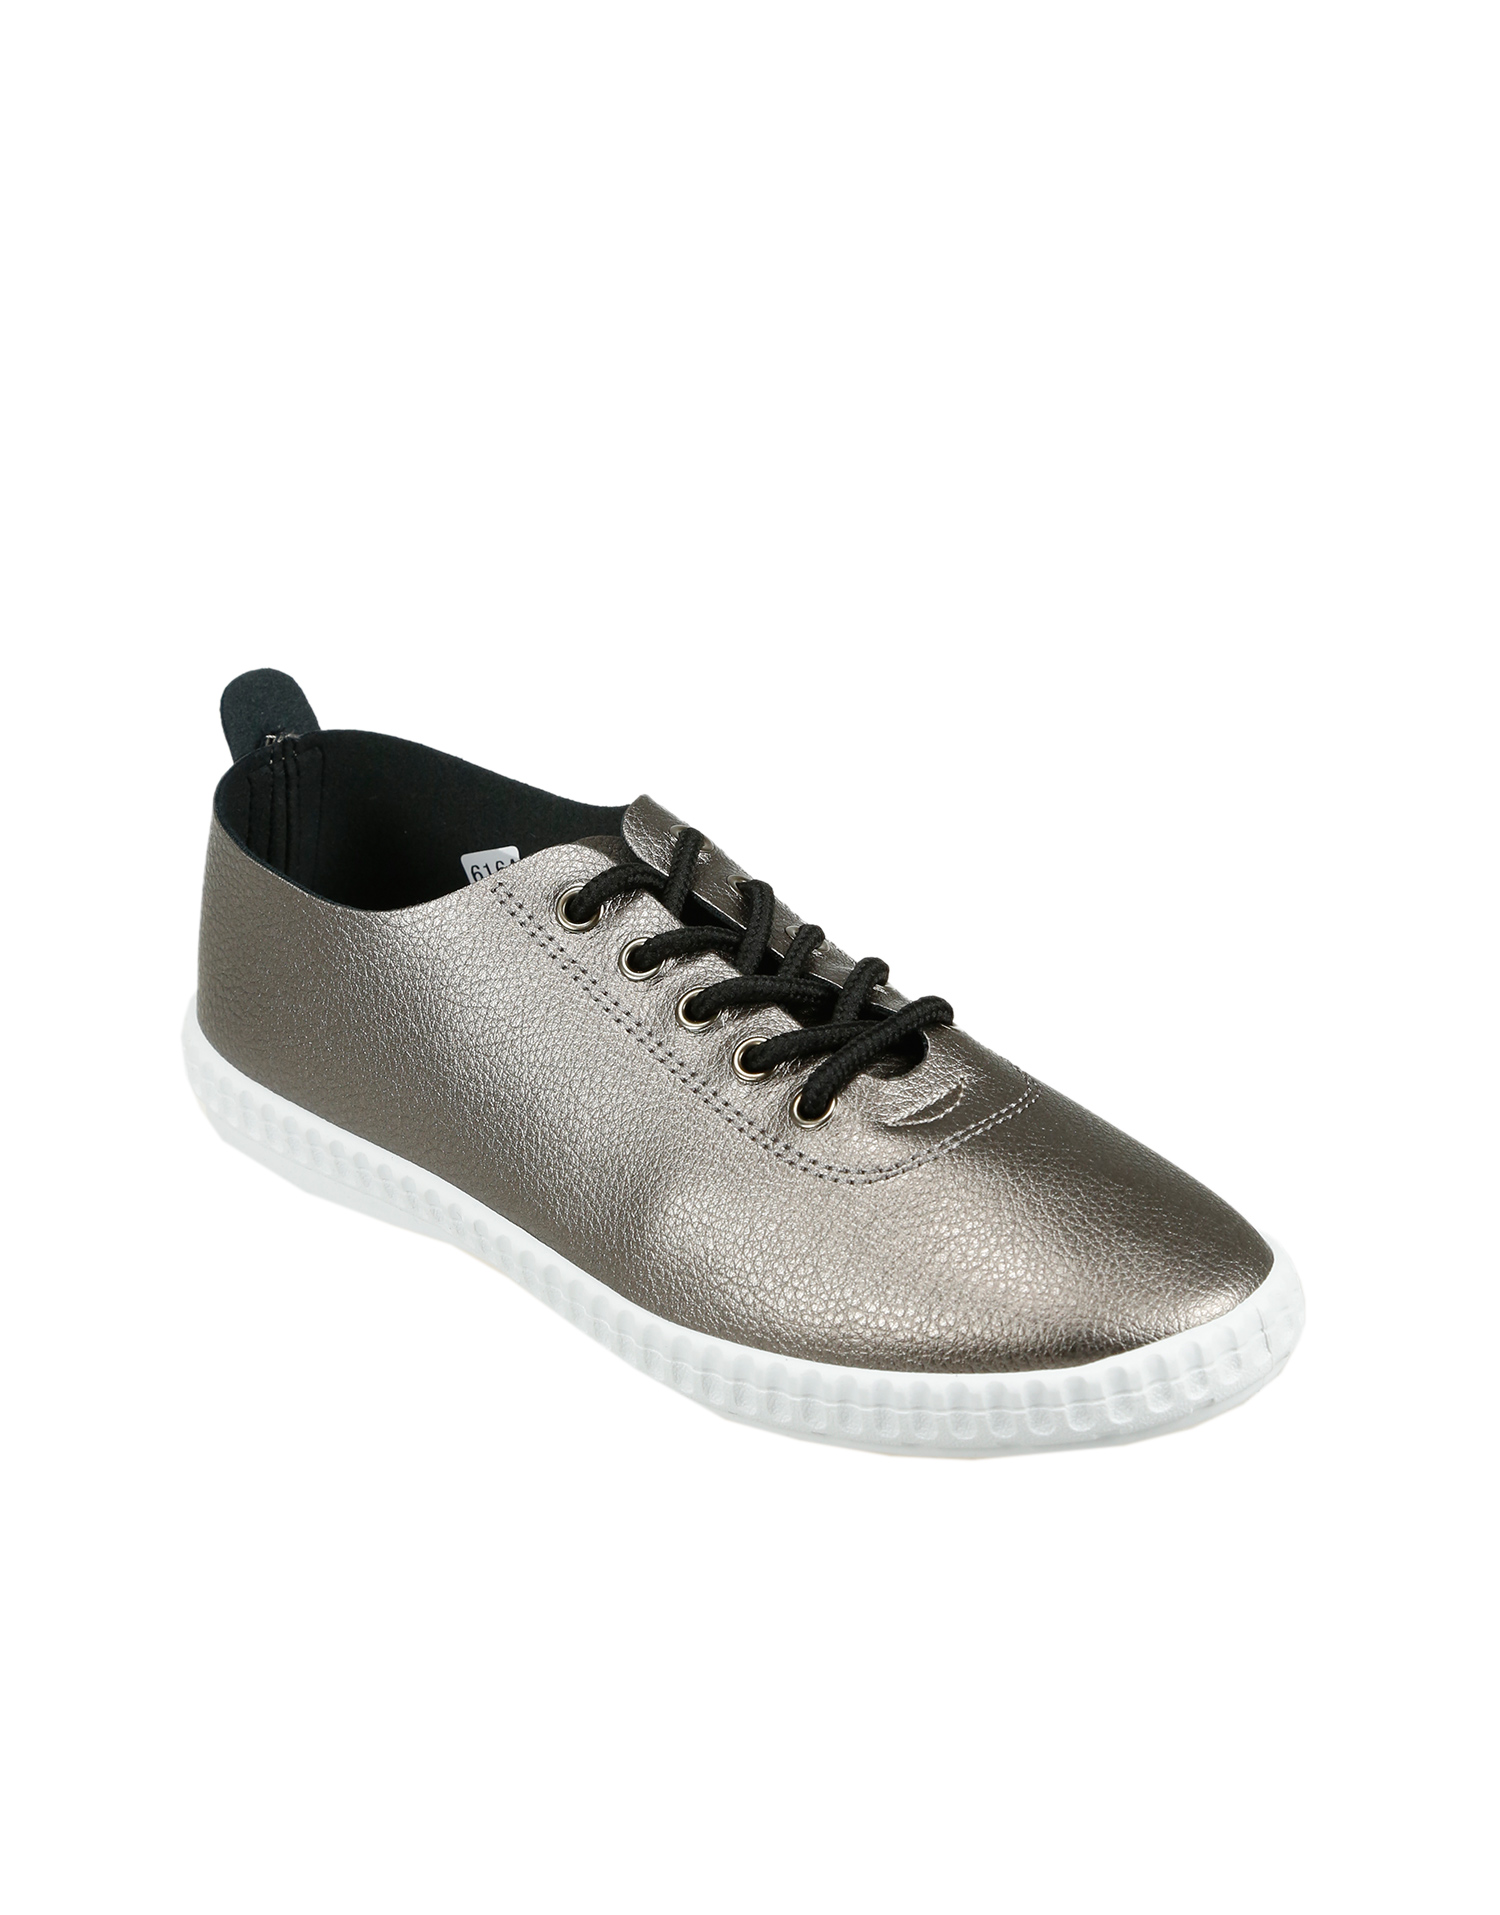 Miss Coquines - Baskets basses - Chaussures - Baskets - Baskets basses